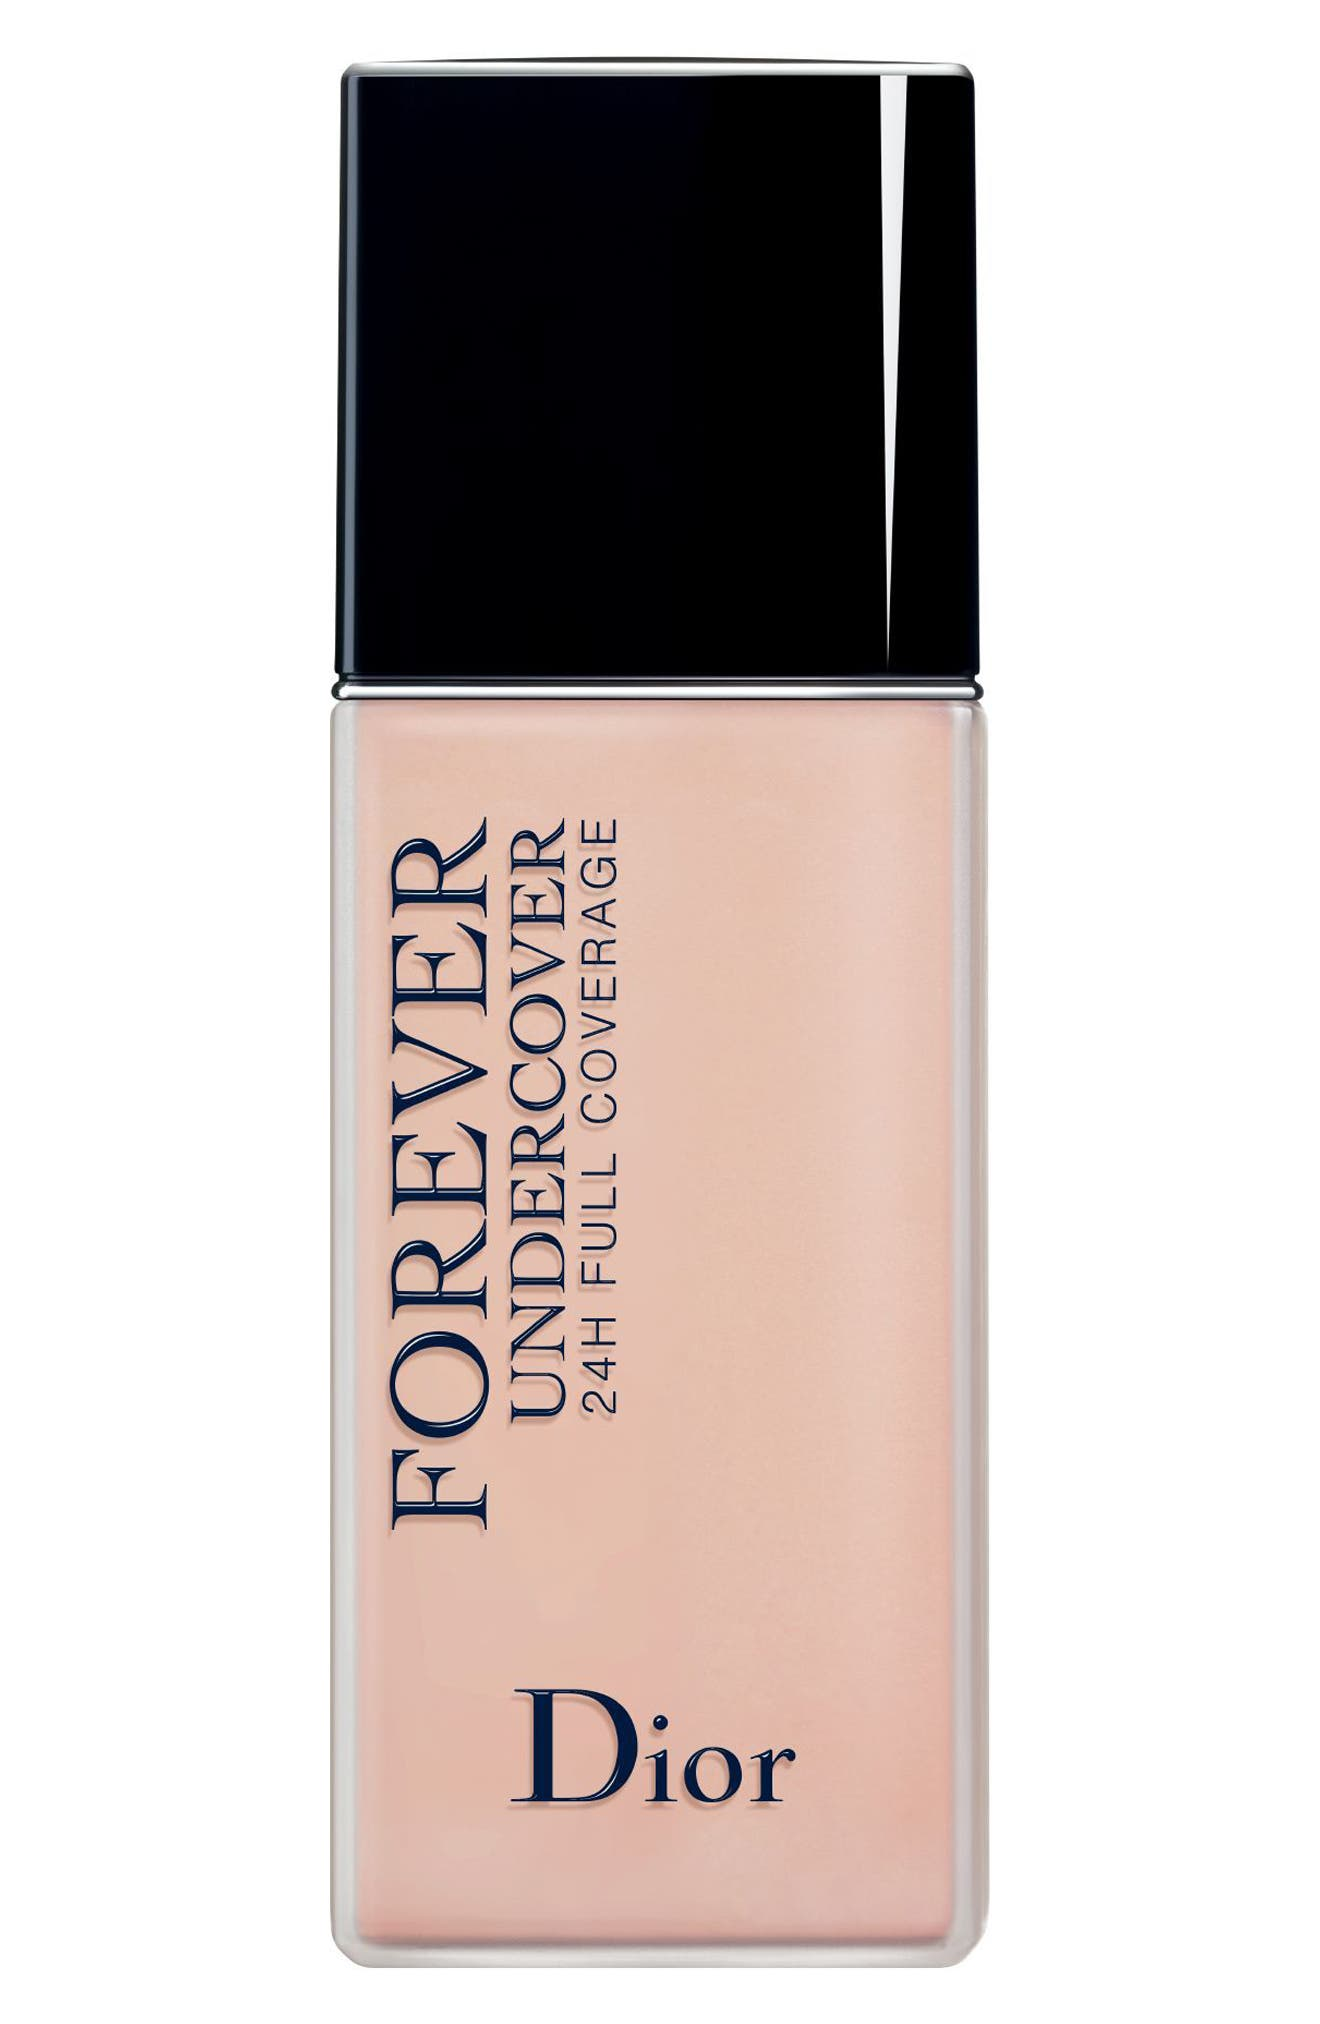 Dior Diorskin Forever Undercover 24-Hour Full Coverage Water-Based Foundation - 014 Fair Almond